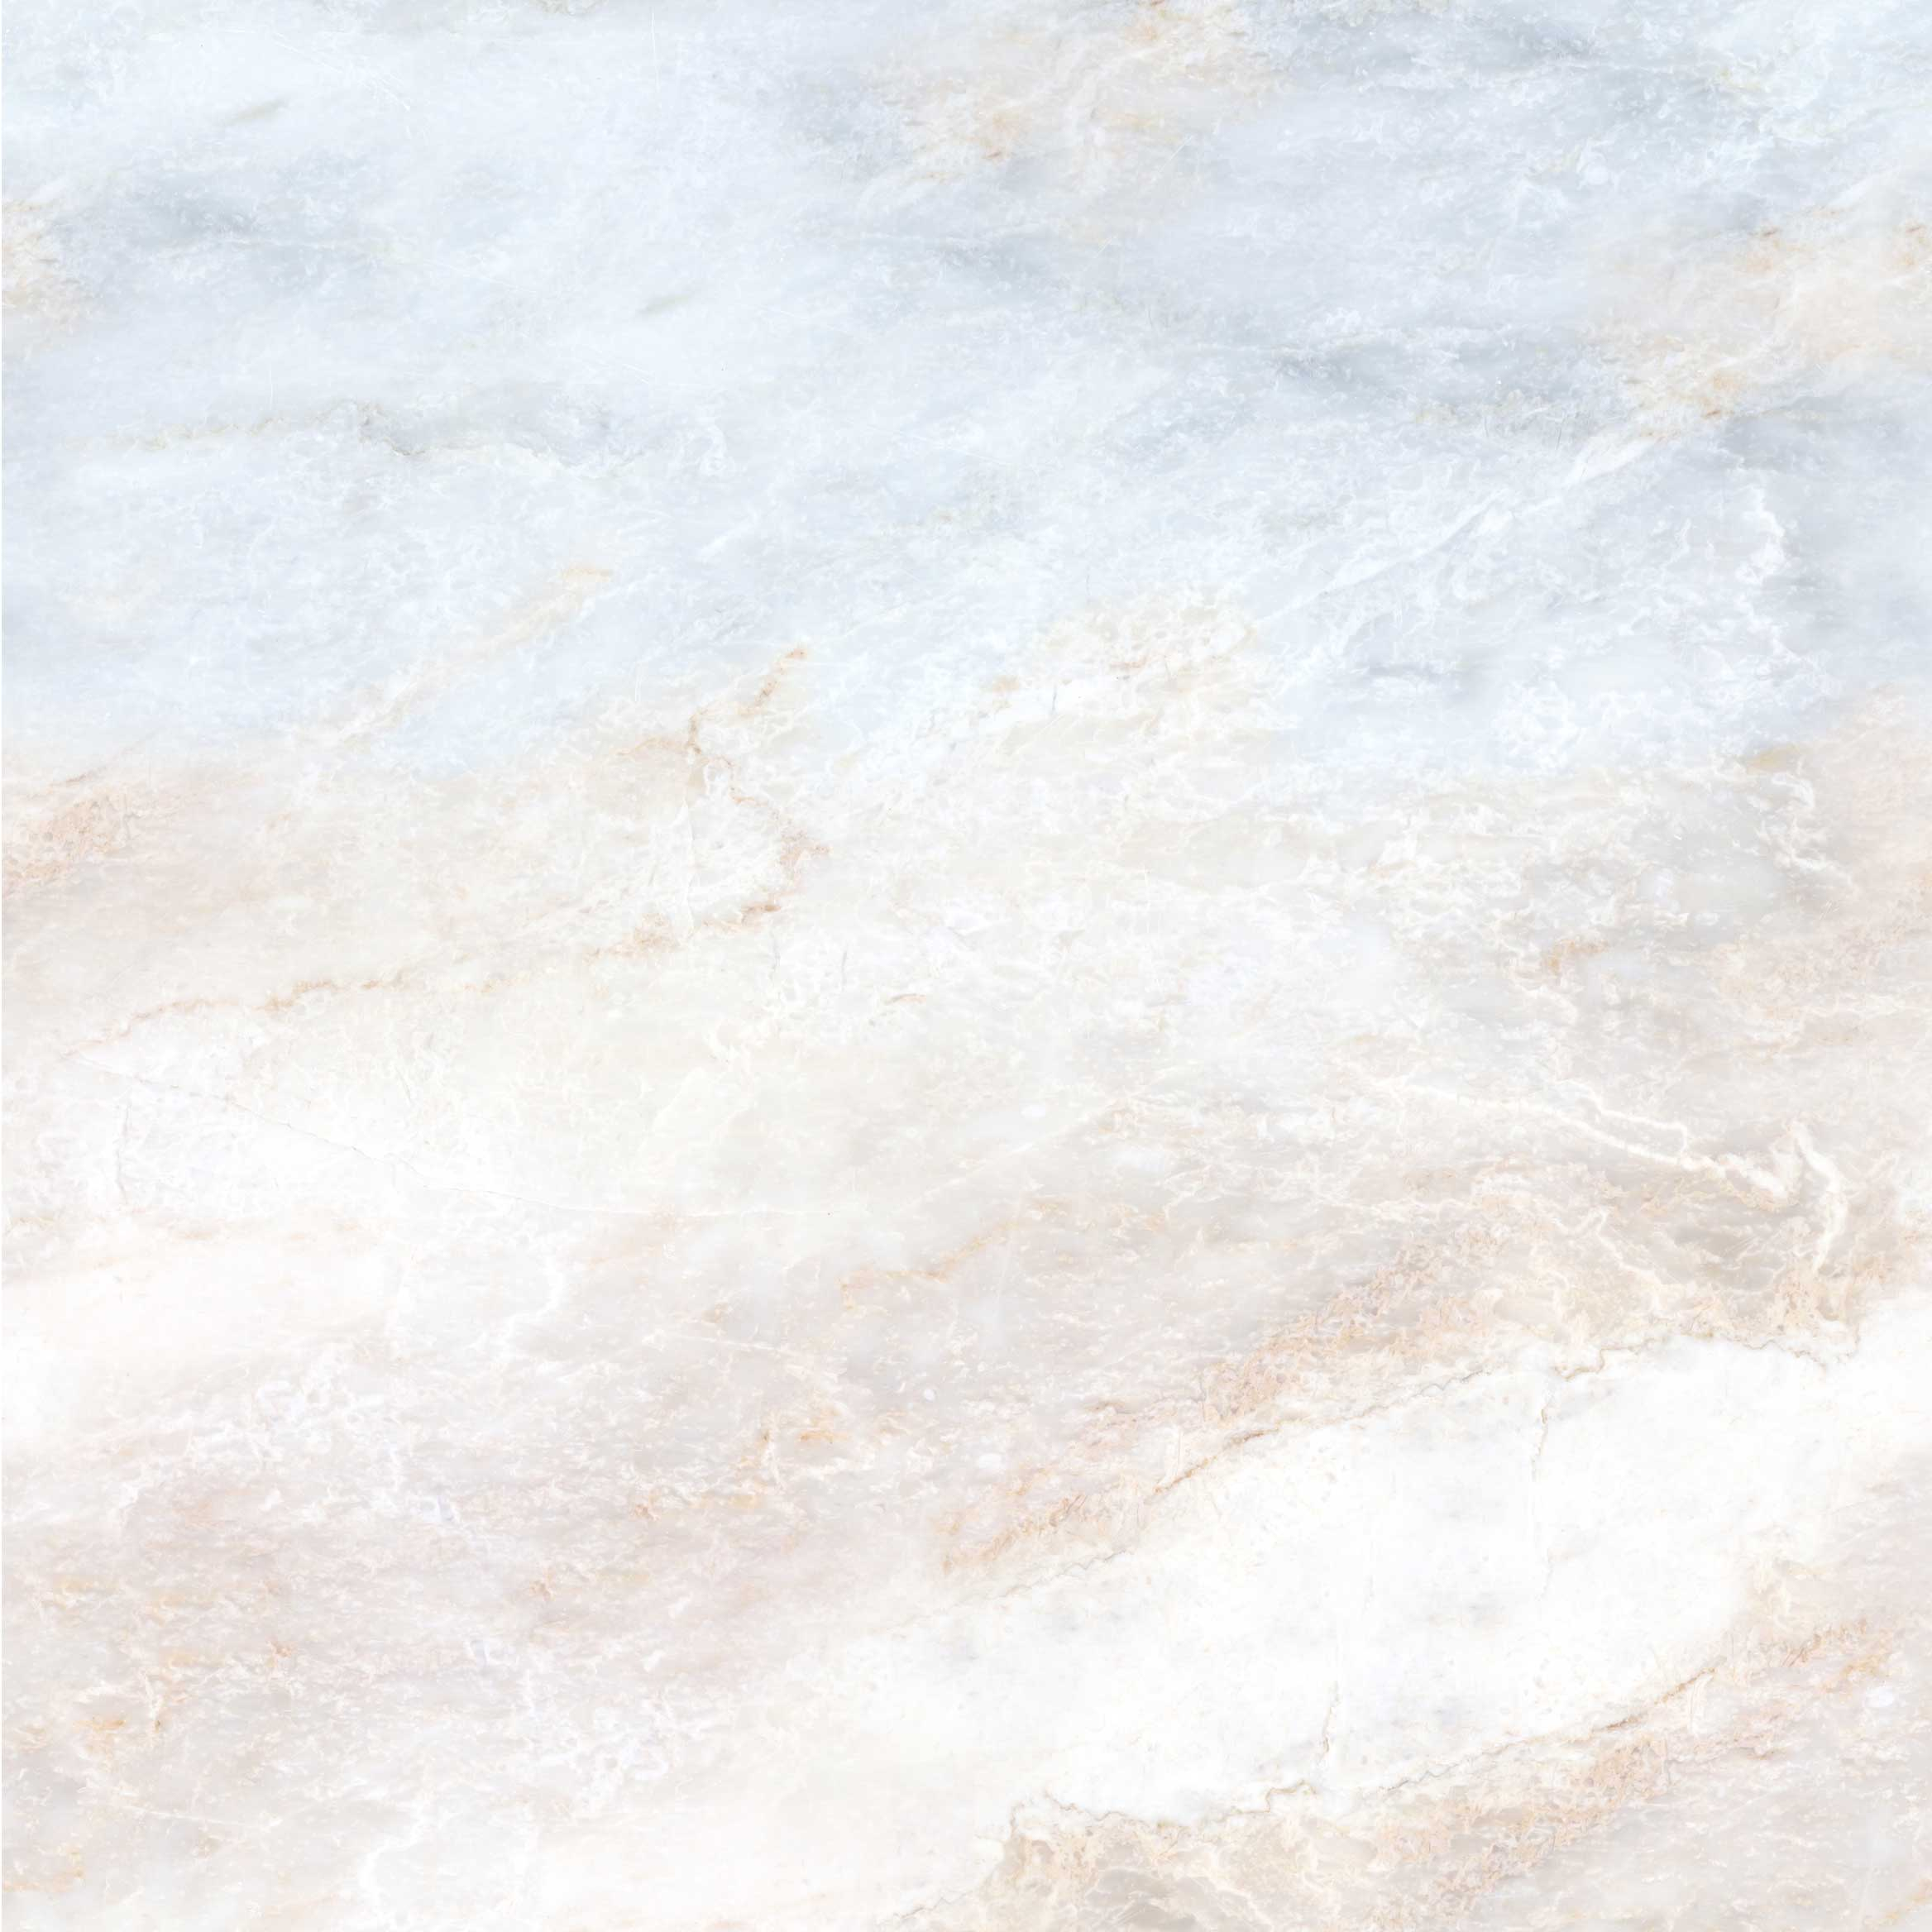 Best Wallpaper Marble Pastel - SoftMarble-2336  Best Photo Reference_773425.jpg